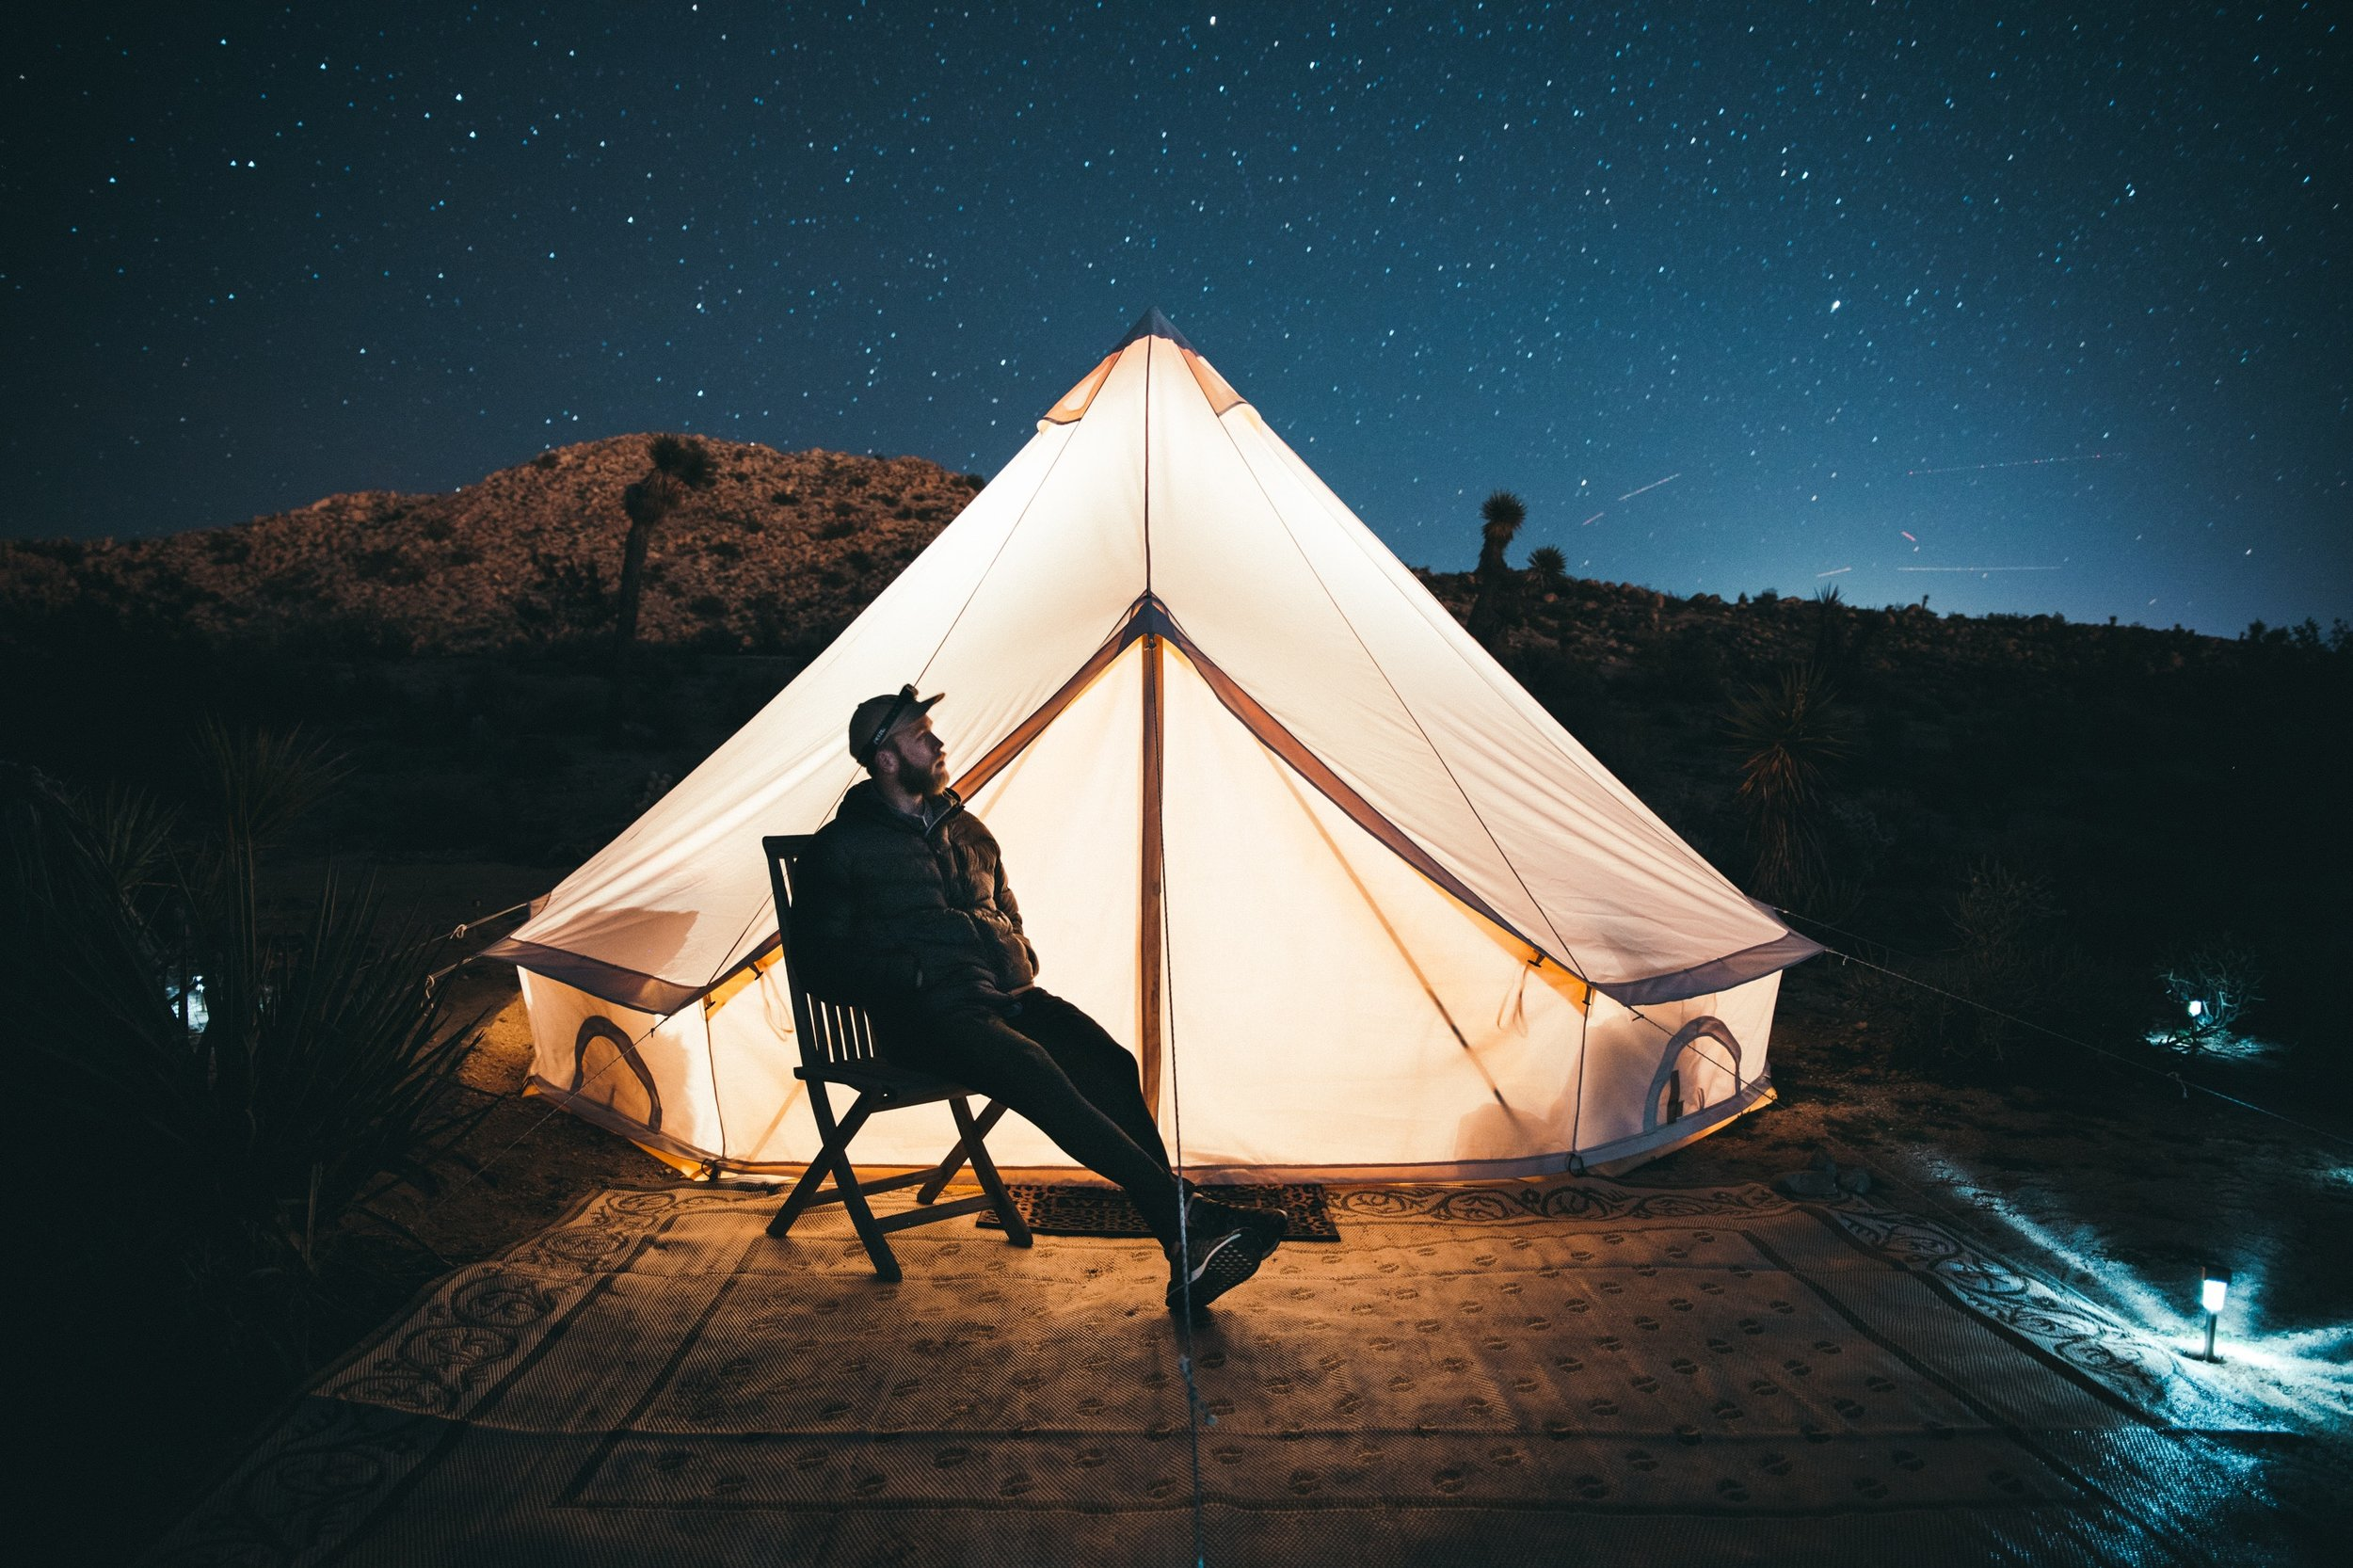 Star Gazing Yurt - Enjoying watching the stars from the comfort of your own tent in the desert.